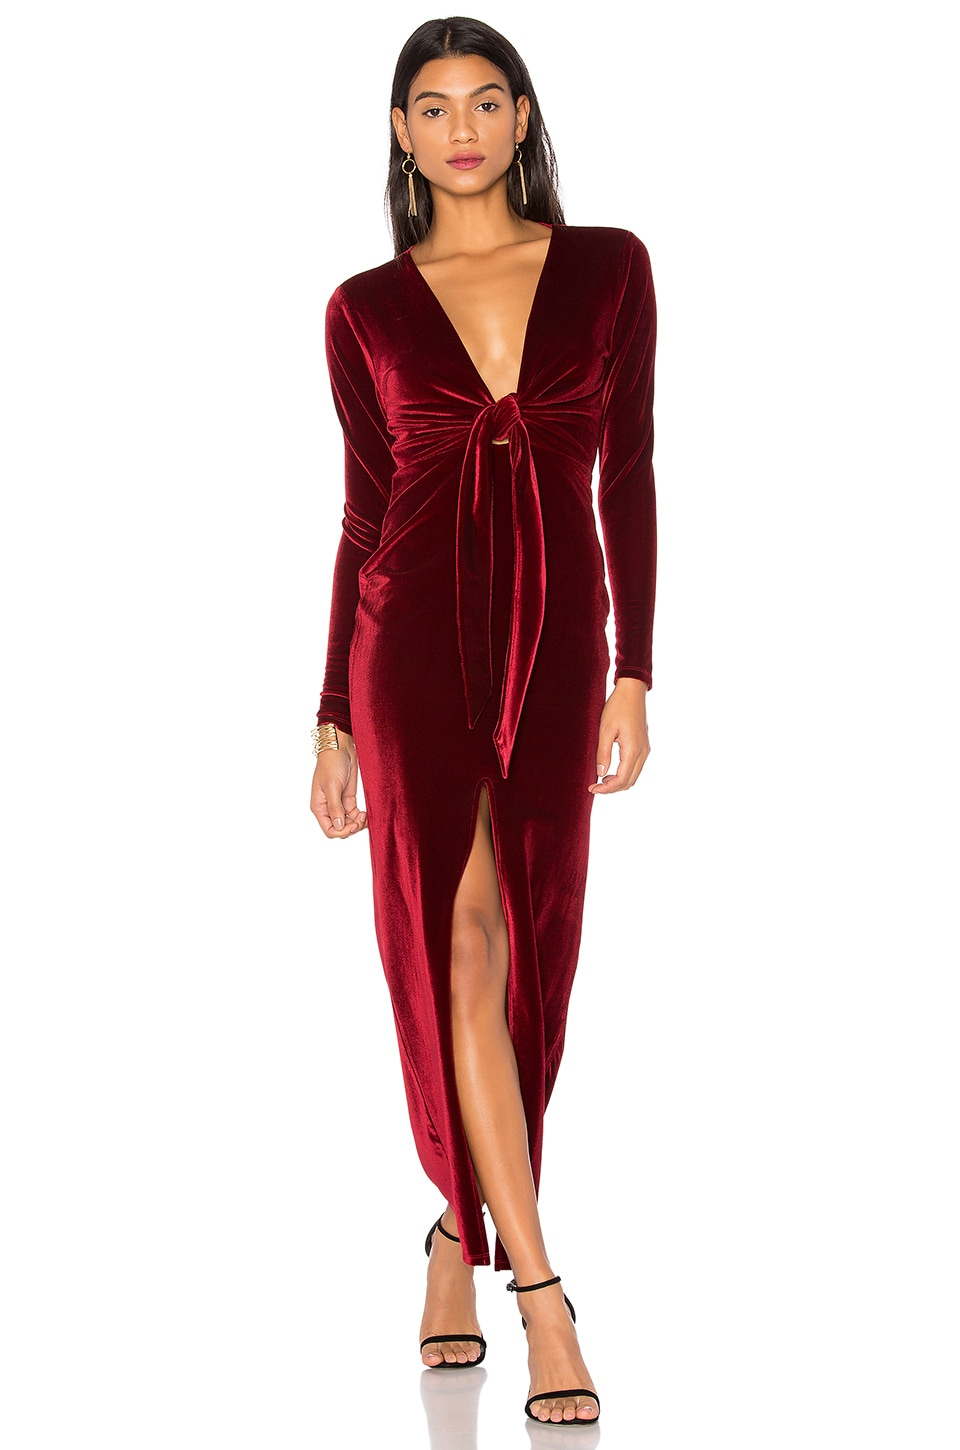 323157aa477 LPA Dress 45 in Merlot